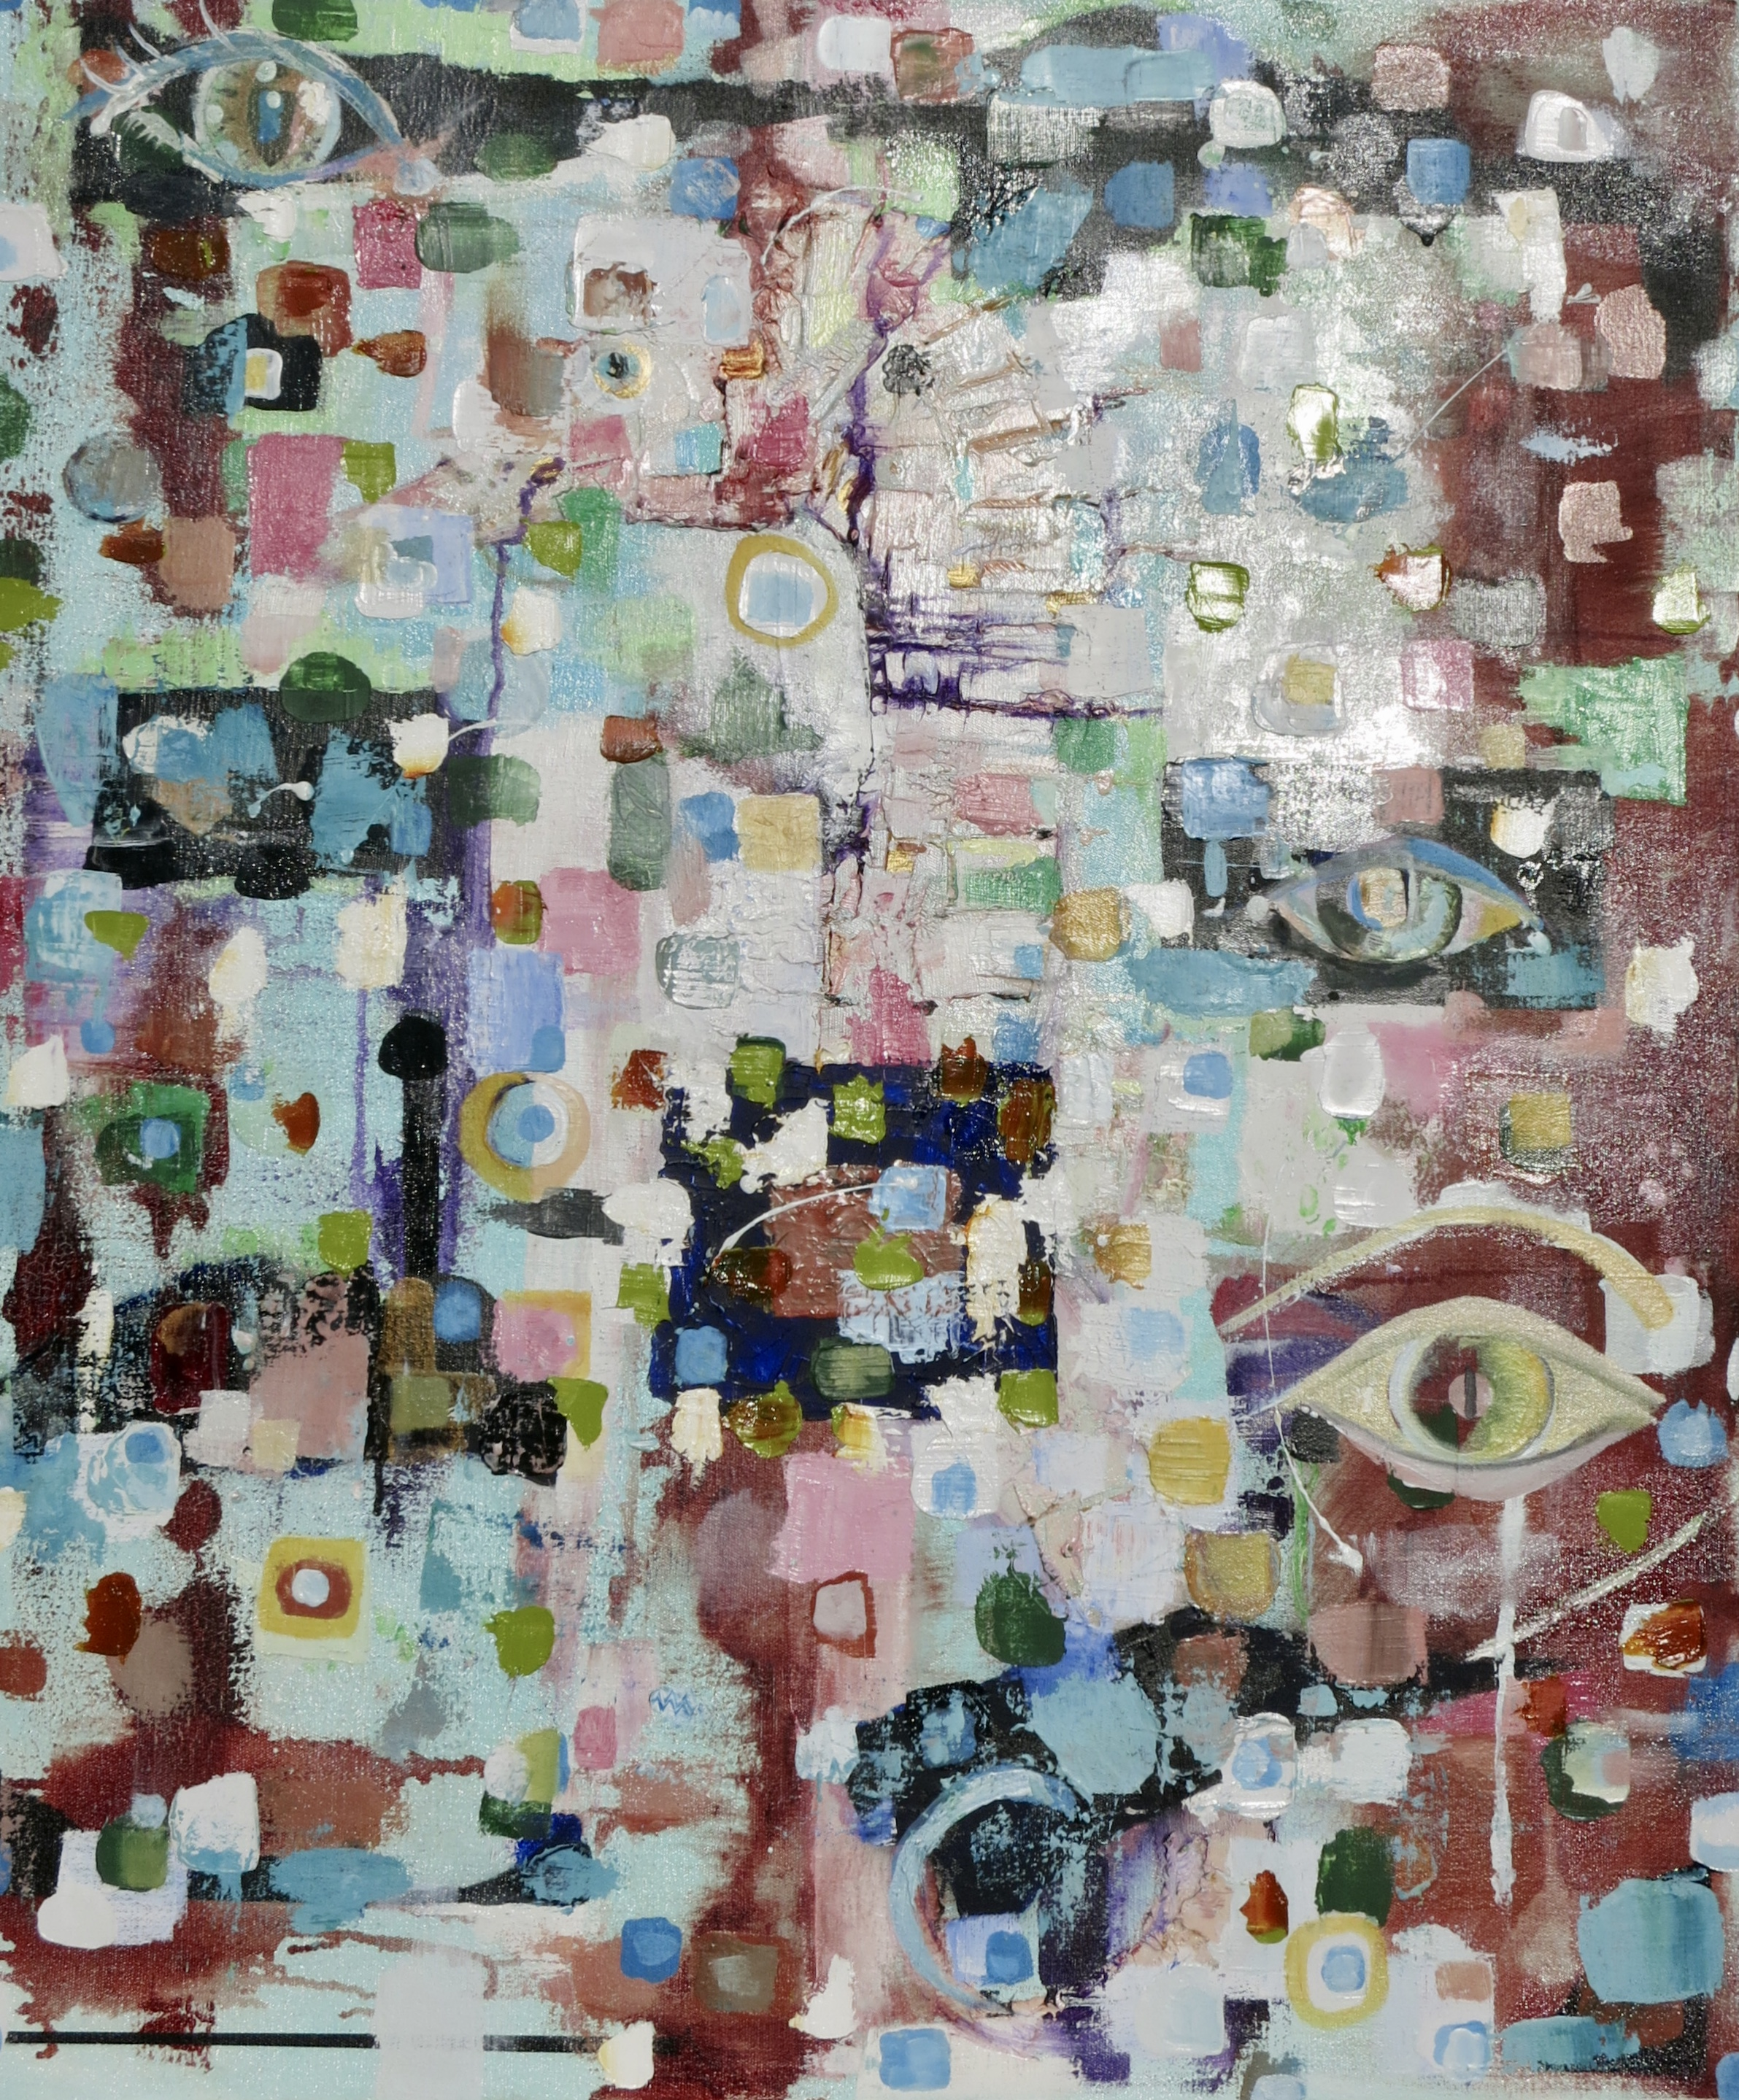 Escape artwork by Susan Proctor Hume - art listed for sale on Artplode